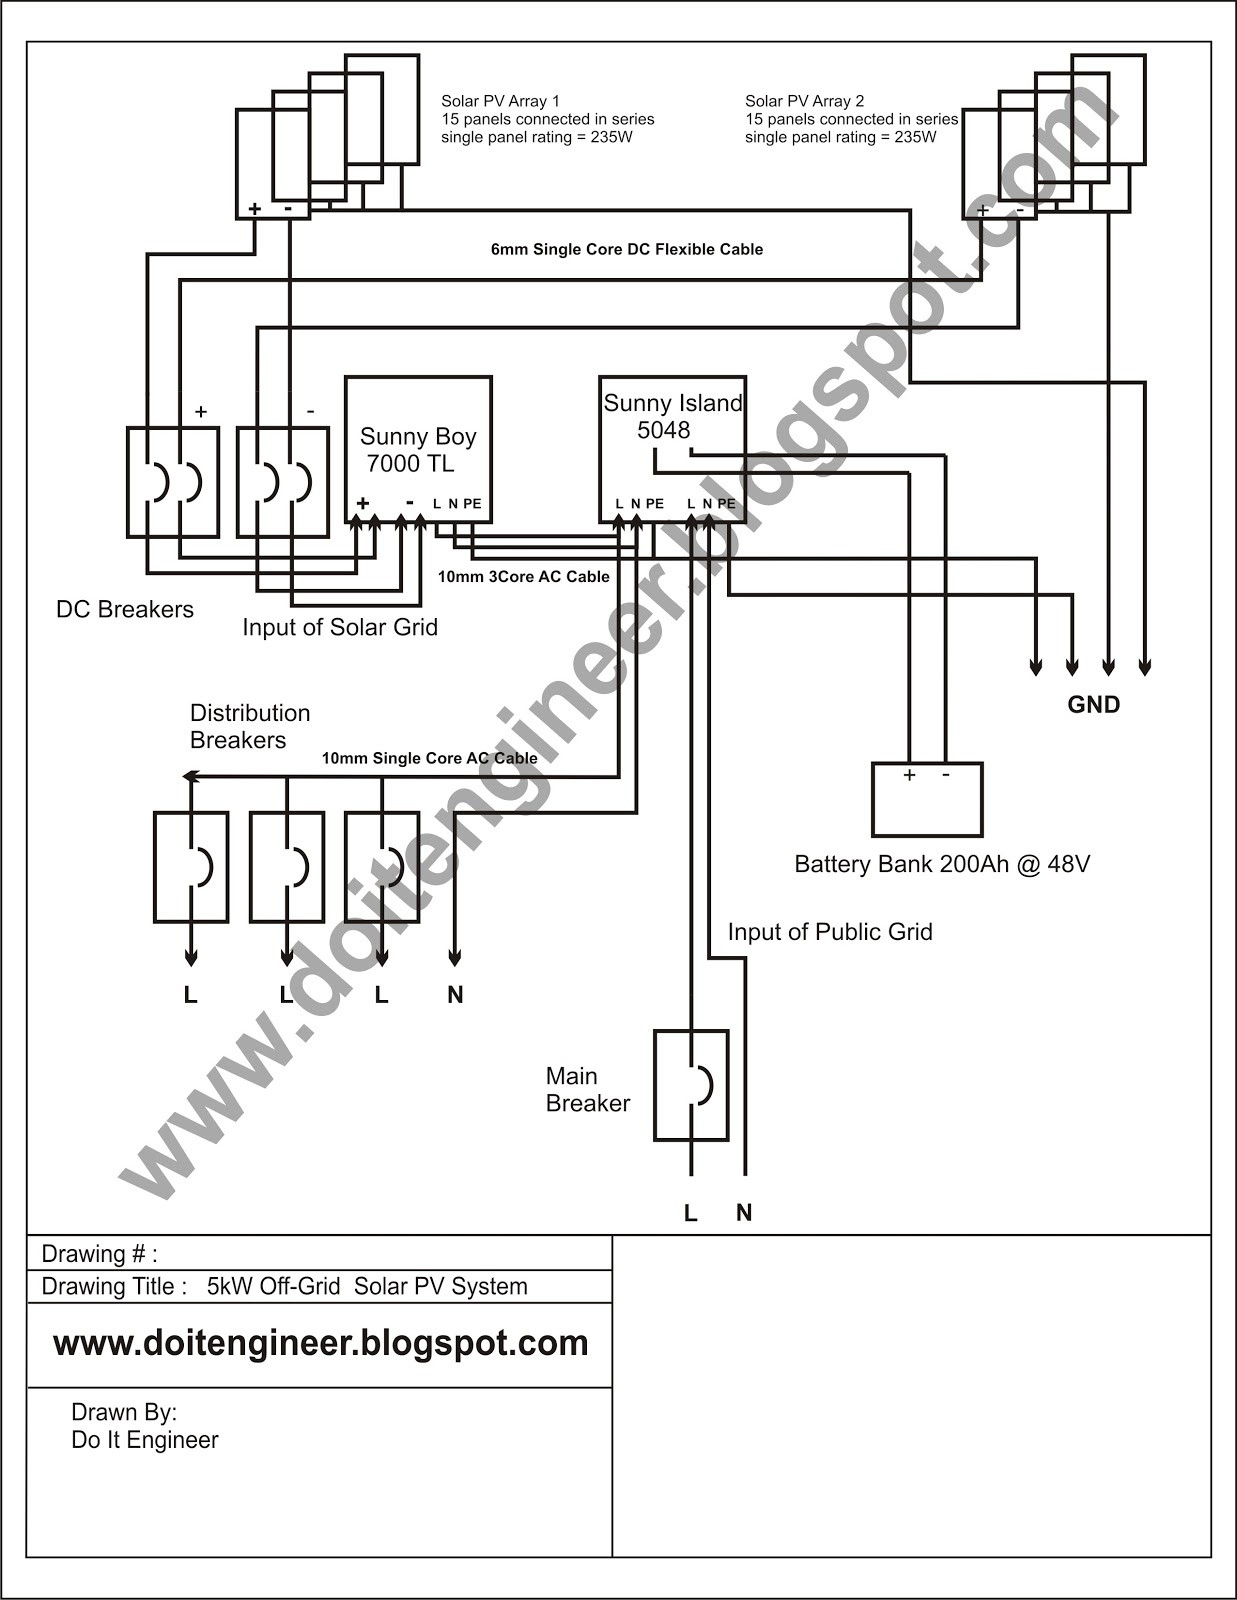 solar panel wiring diagram Collection-solar system wiring diagram Download Wiring Diagram For f Grid Solar System Refrence 5kw F DOWNLOAD Wiring Diagram Detail Name solar system 12-l